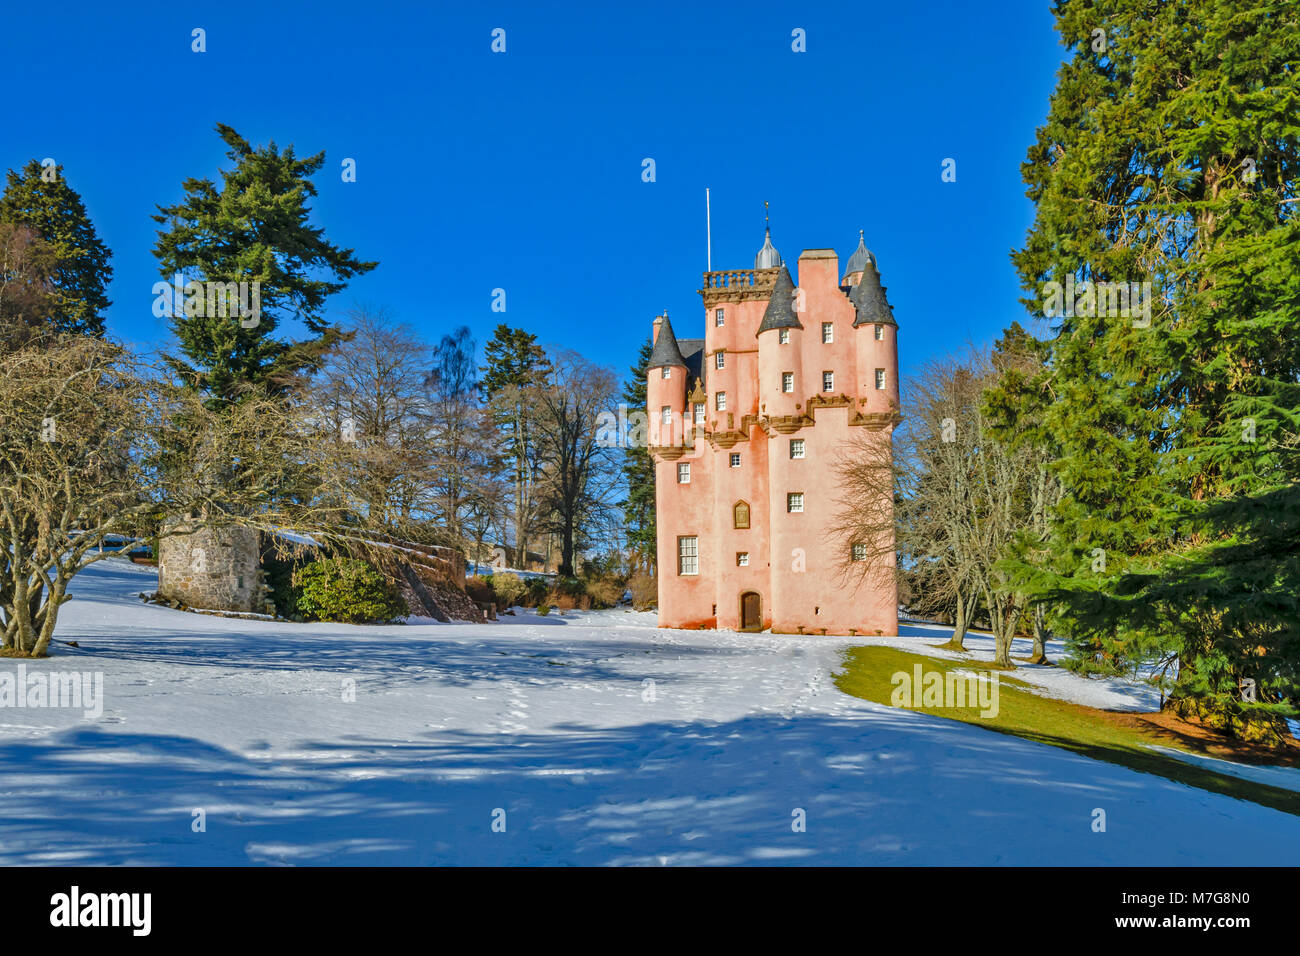 CRAIGIEVAR CASTLE ABERDEENSHIRE SCOTLAND A BLUE SKY AND THE PINK TOWER SURROUNDED BY EVERGREEN FIR TREES AND WINTER - Stock Image